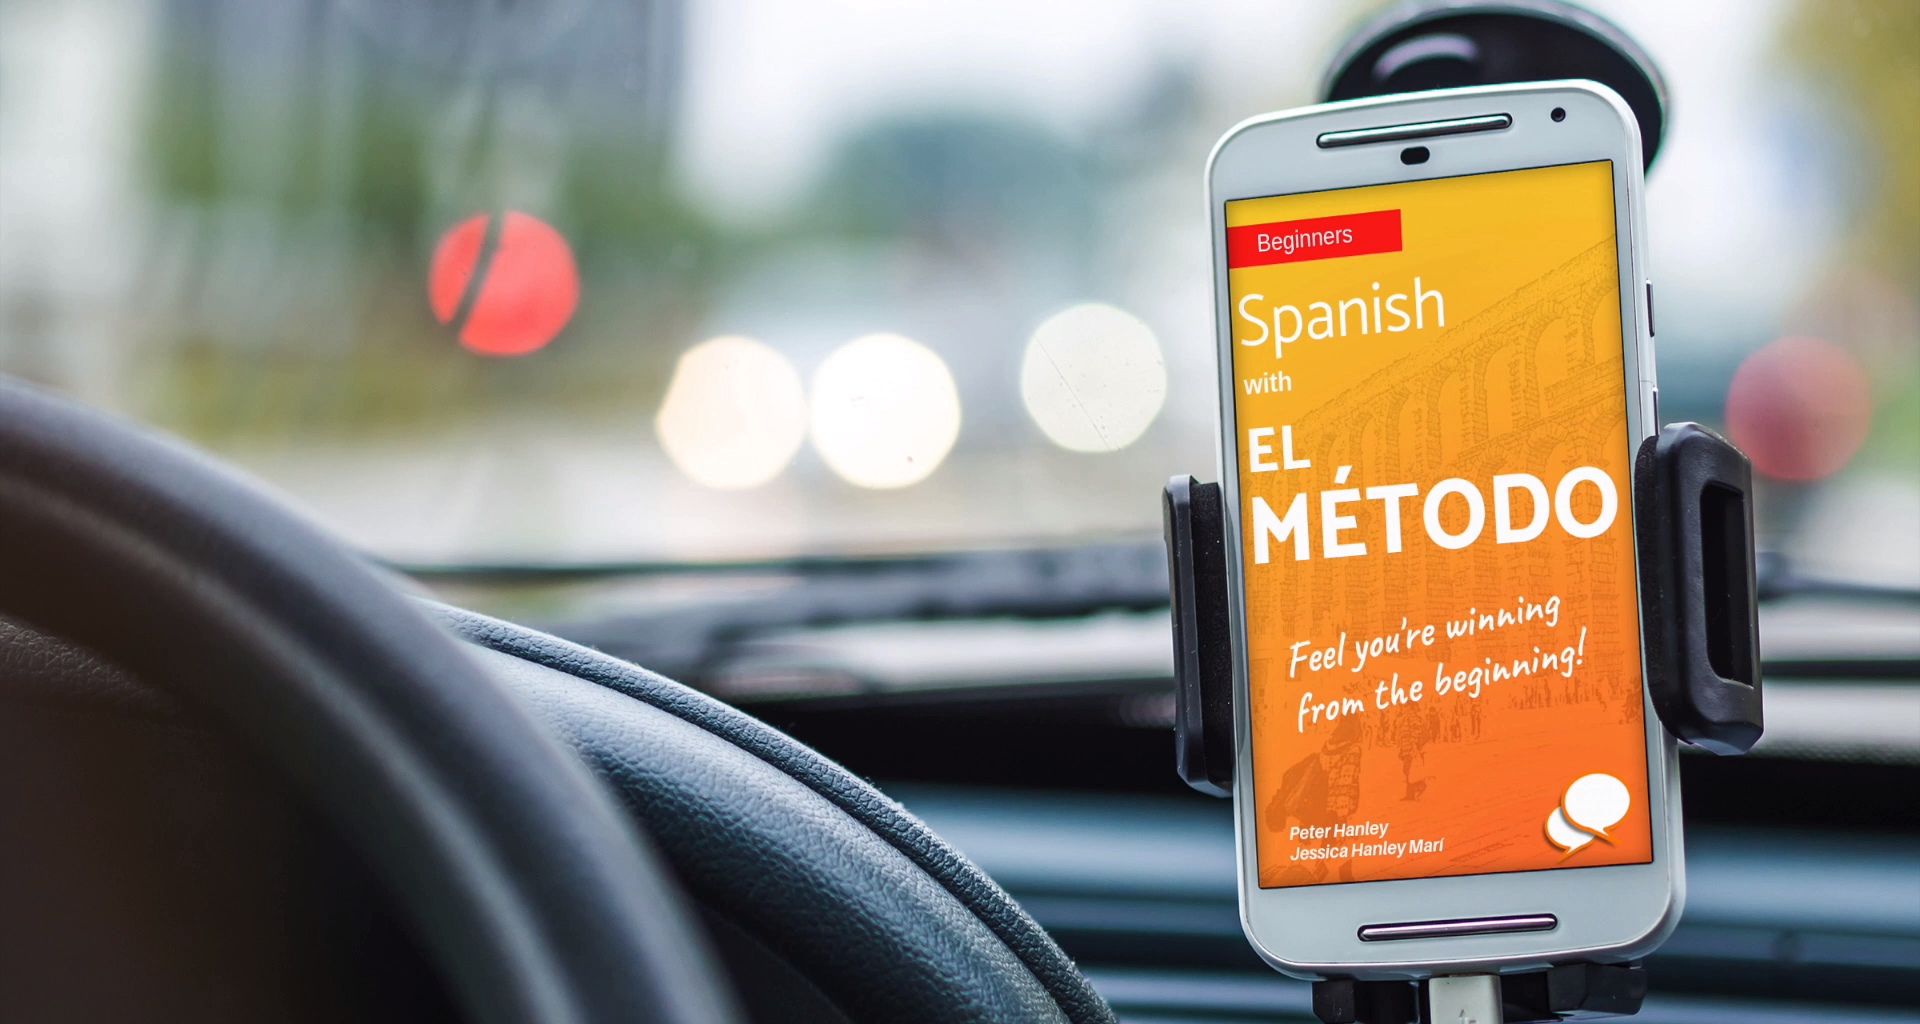 A phone placed in a phone mount on the dashboard of a car There is a Spanish language app open on the screen